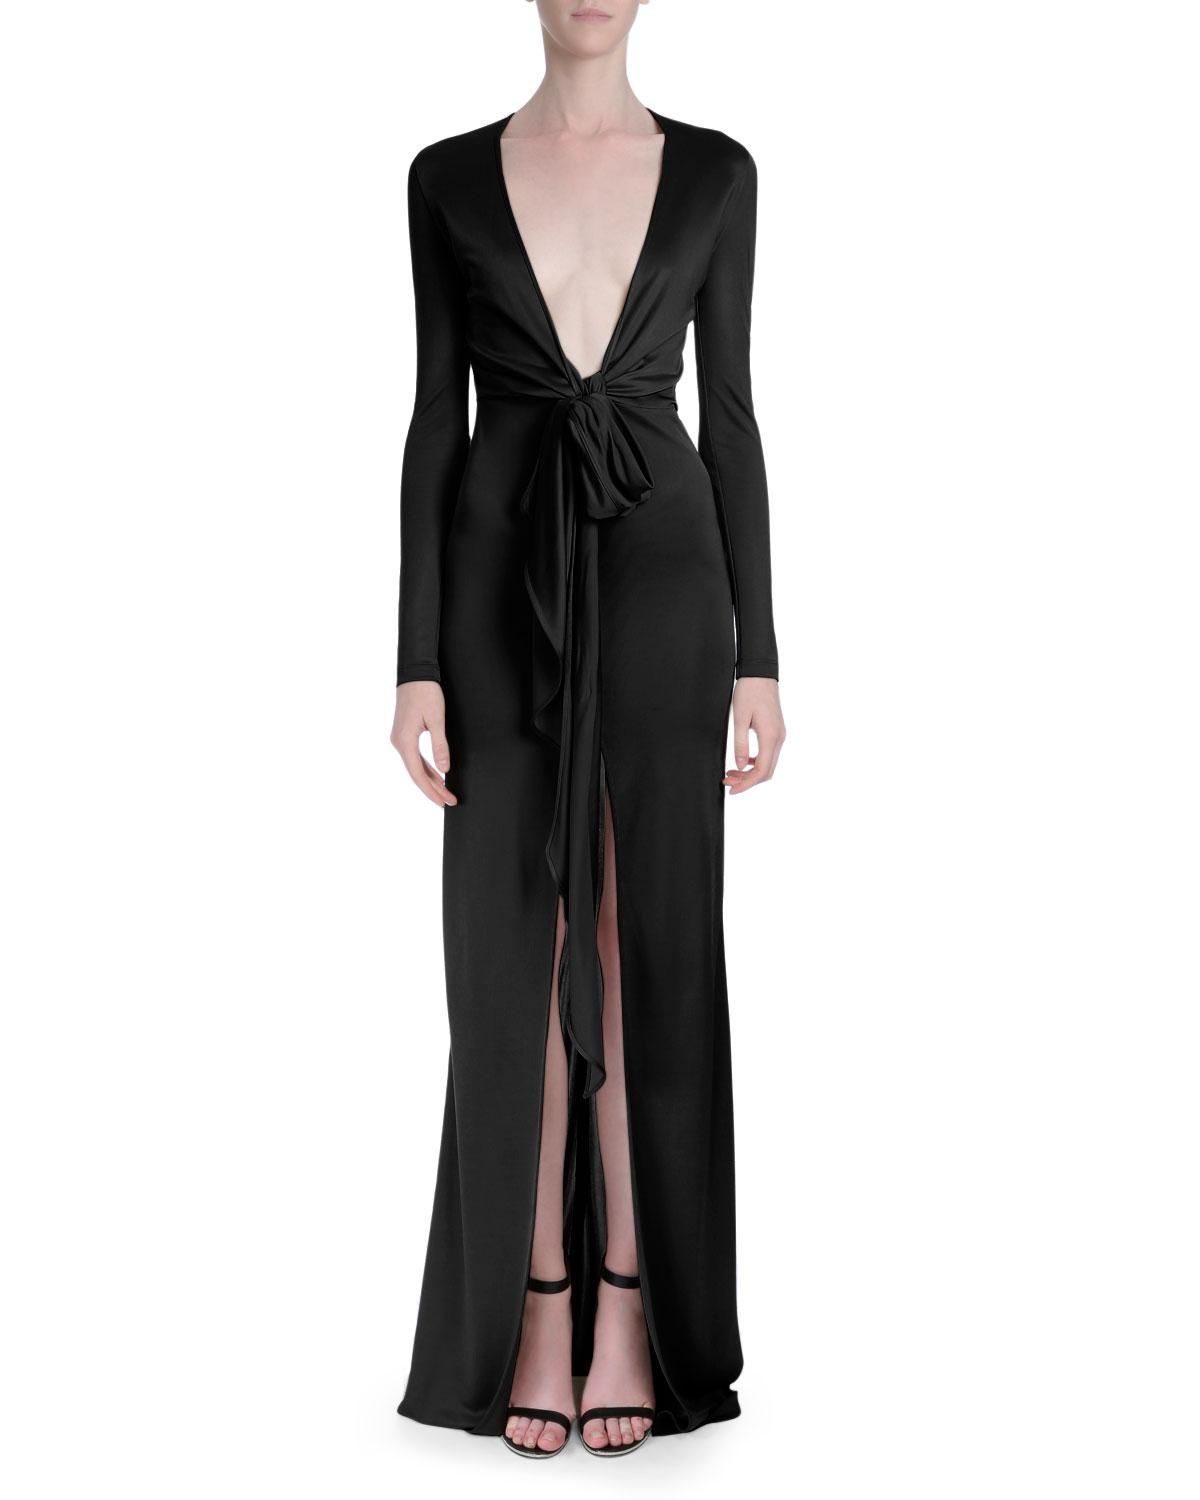 Lyst - Givenchy Plunging-v Long-sleeve Gown in Black